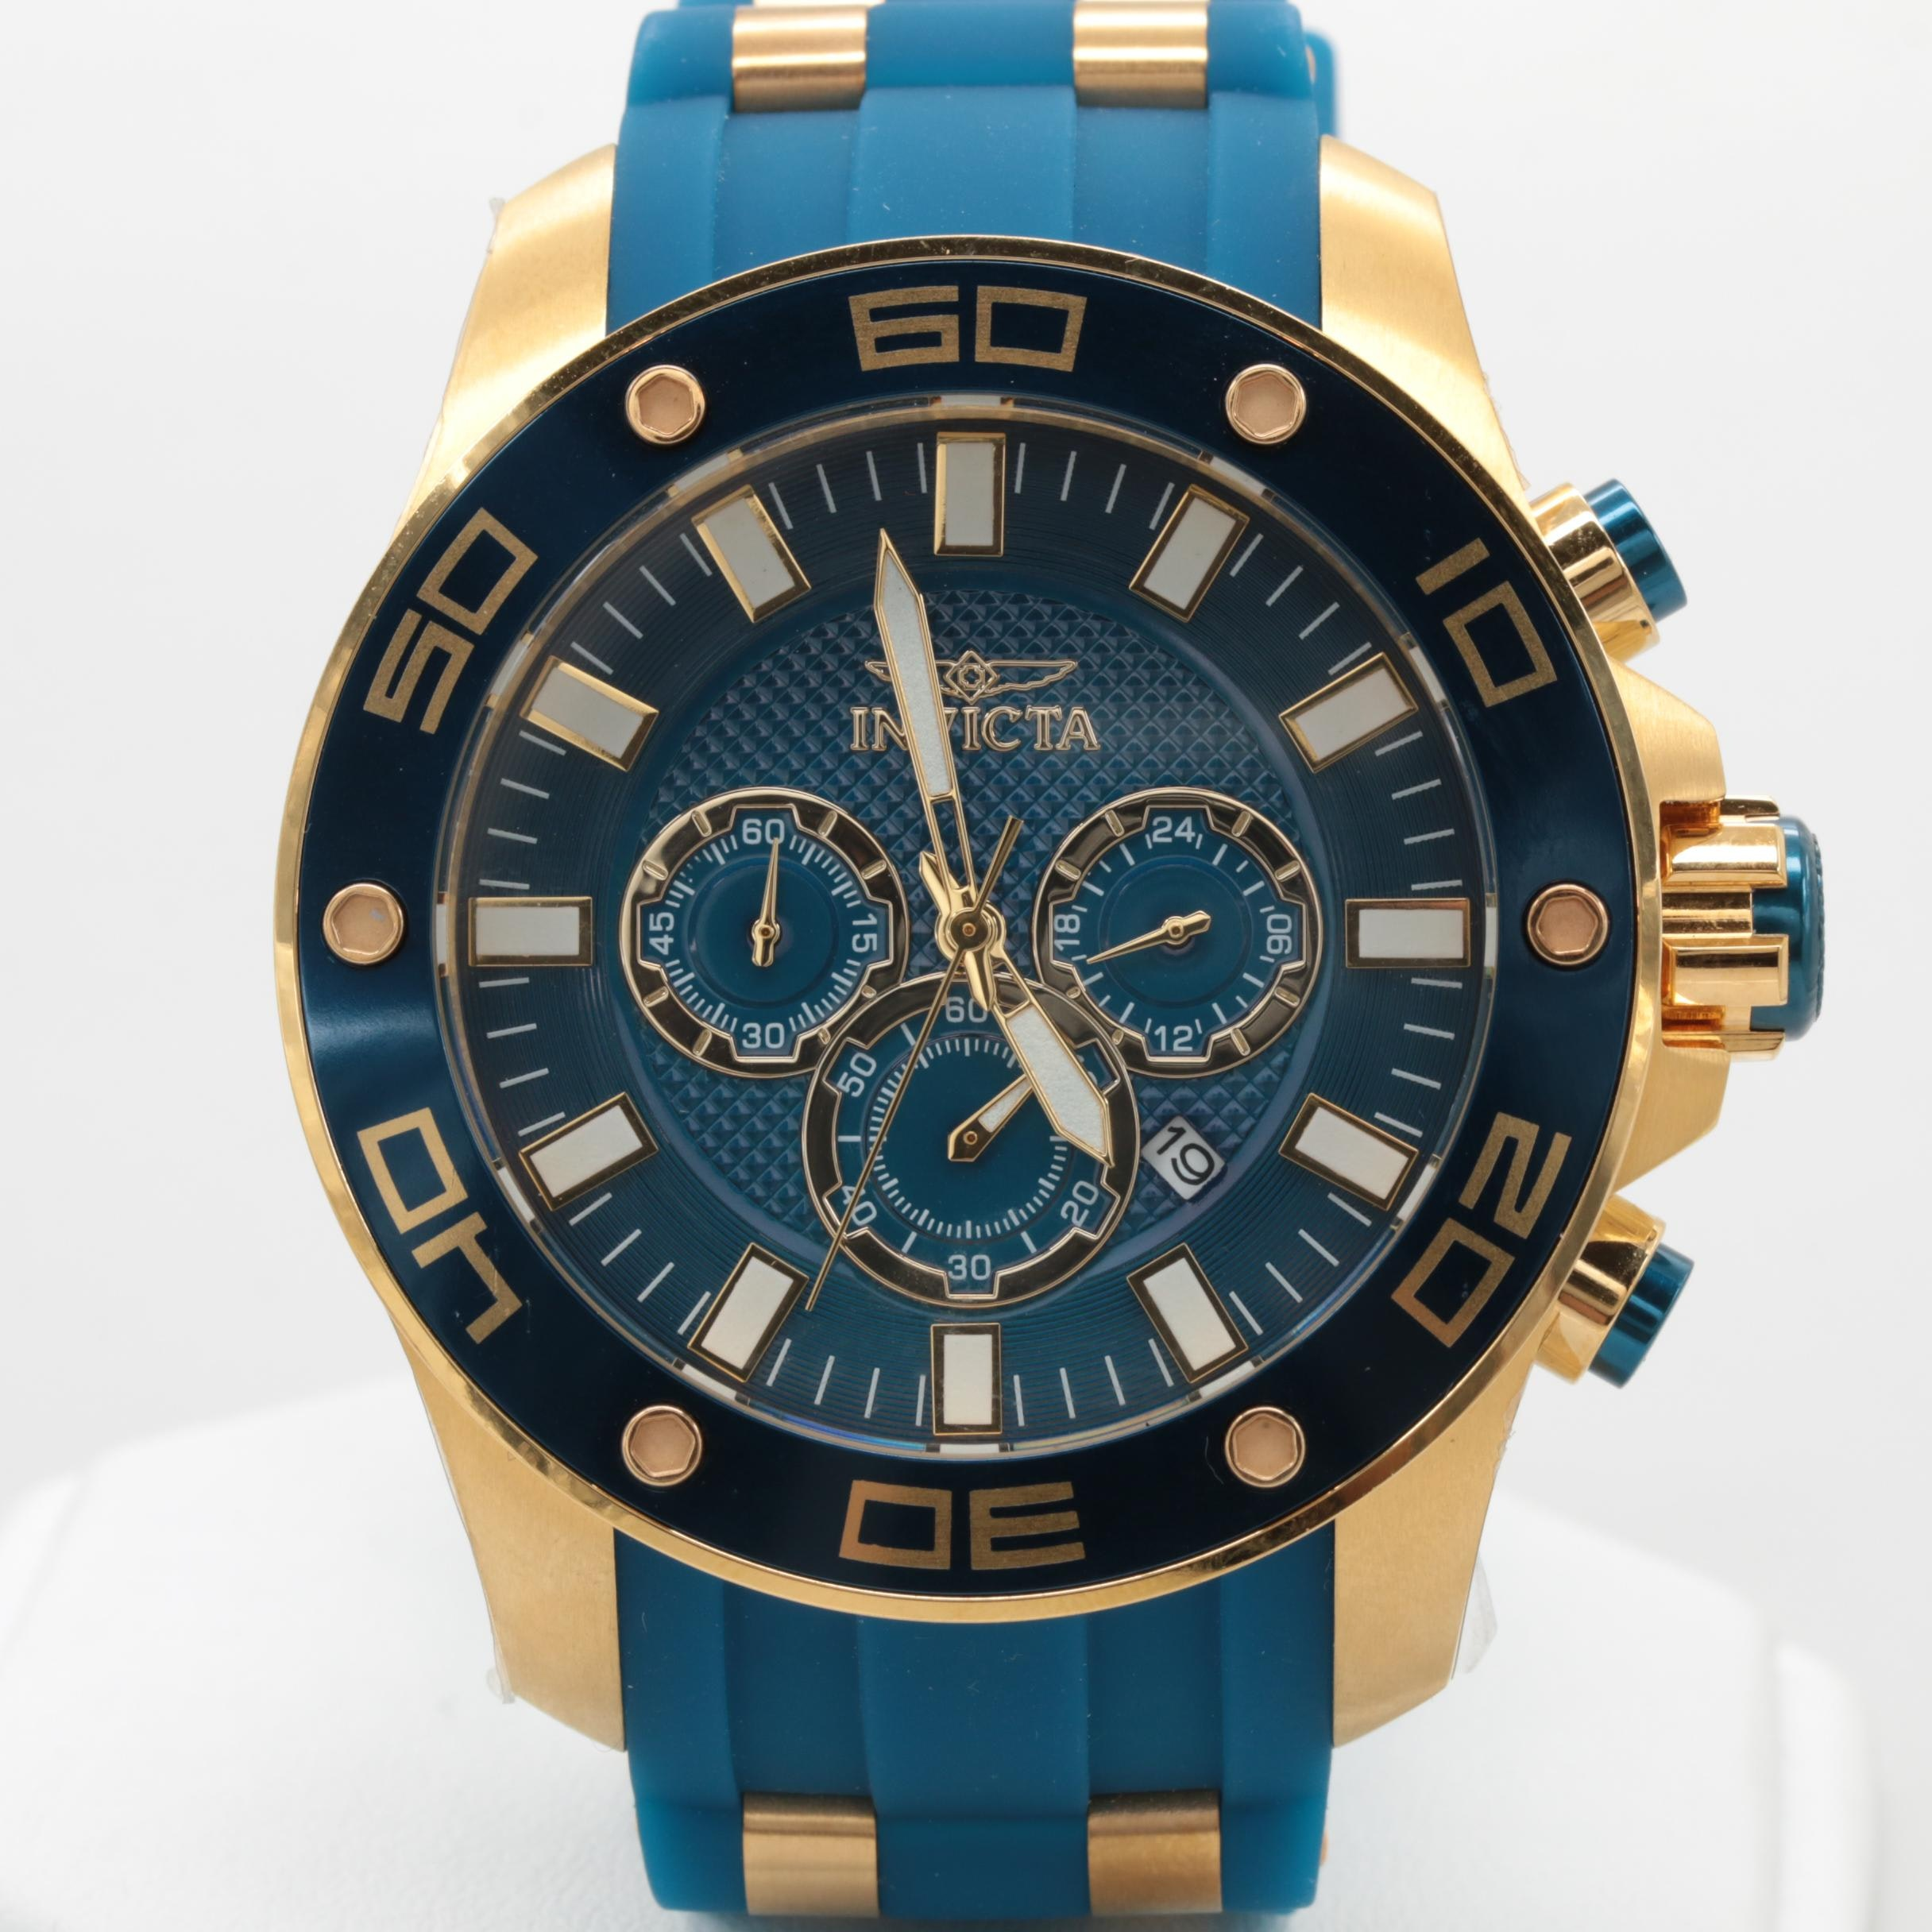 Invicta Gold Tone Stainless Steel Blue Silicone Strap Wristwatch